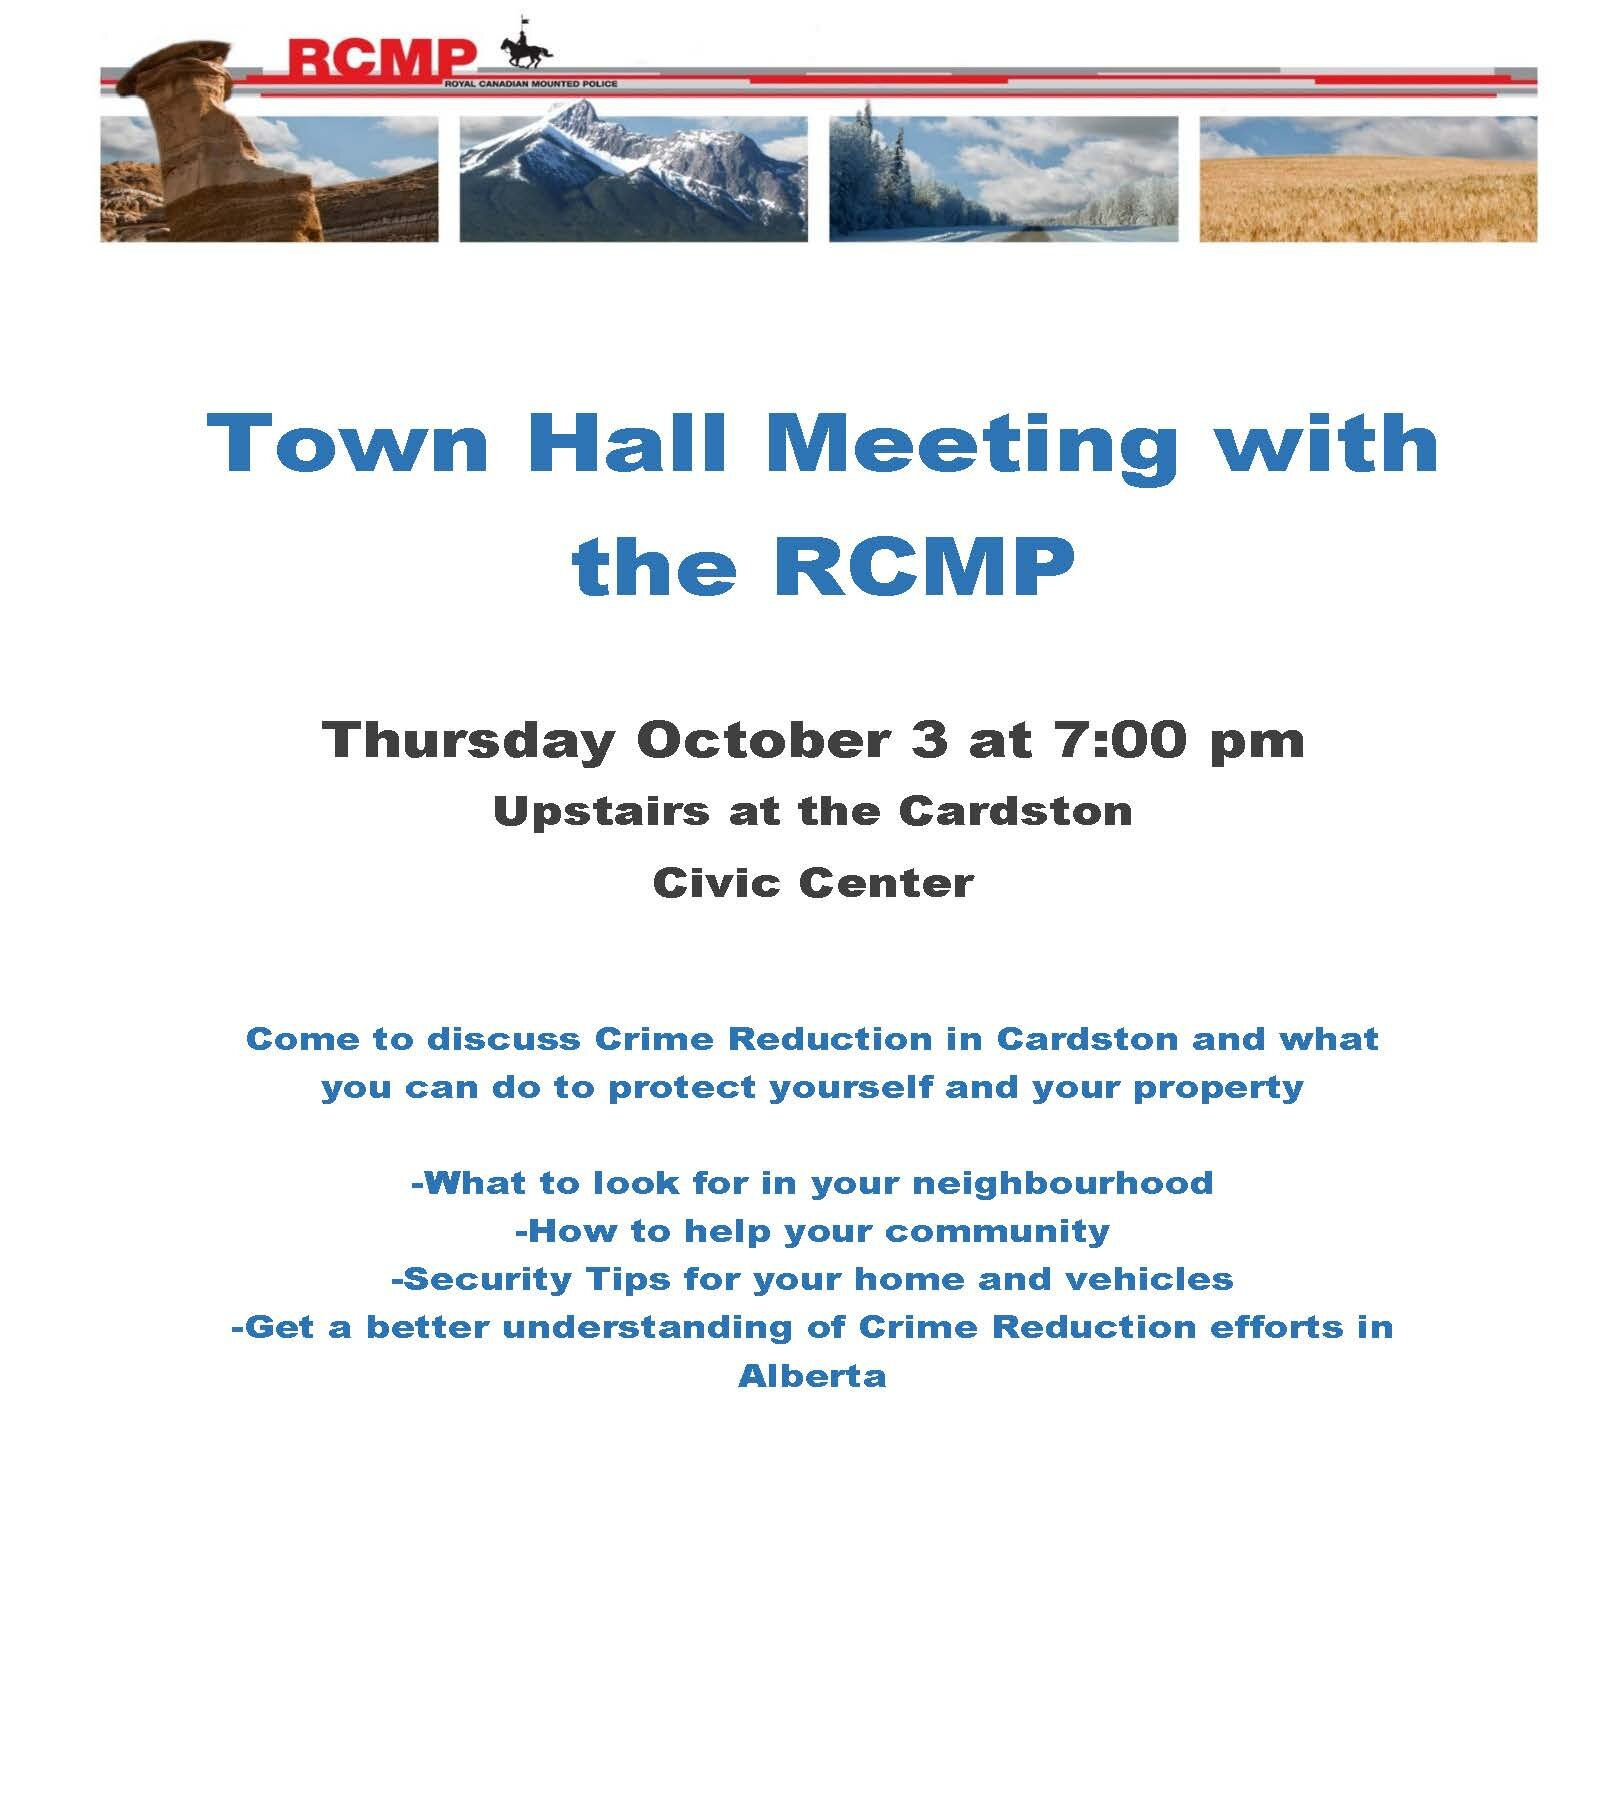 Town Hall Meeting with the RCMP.jpg